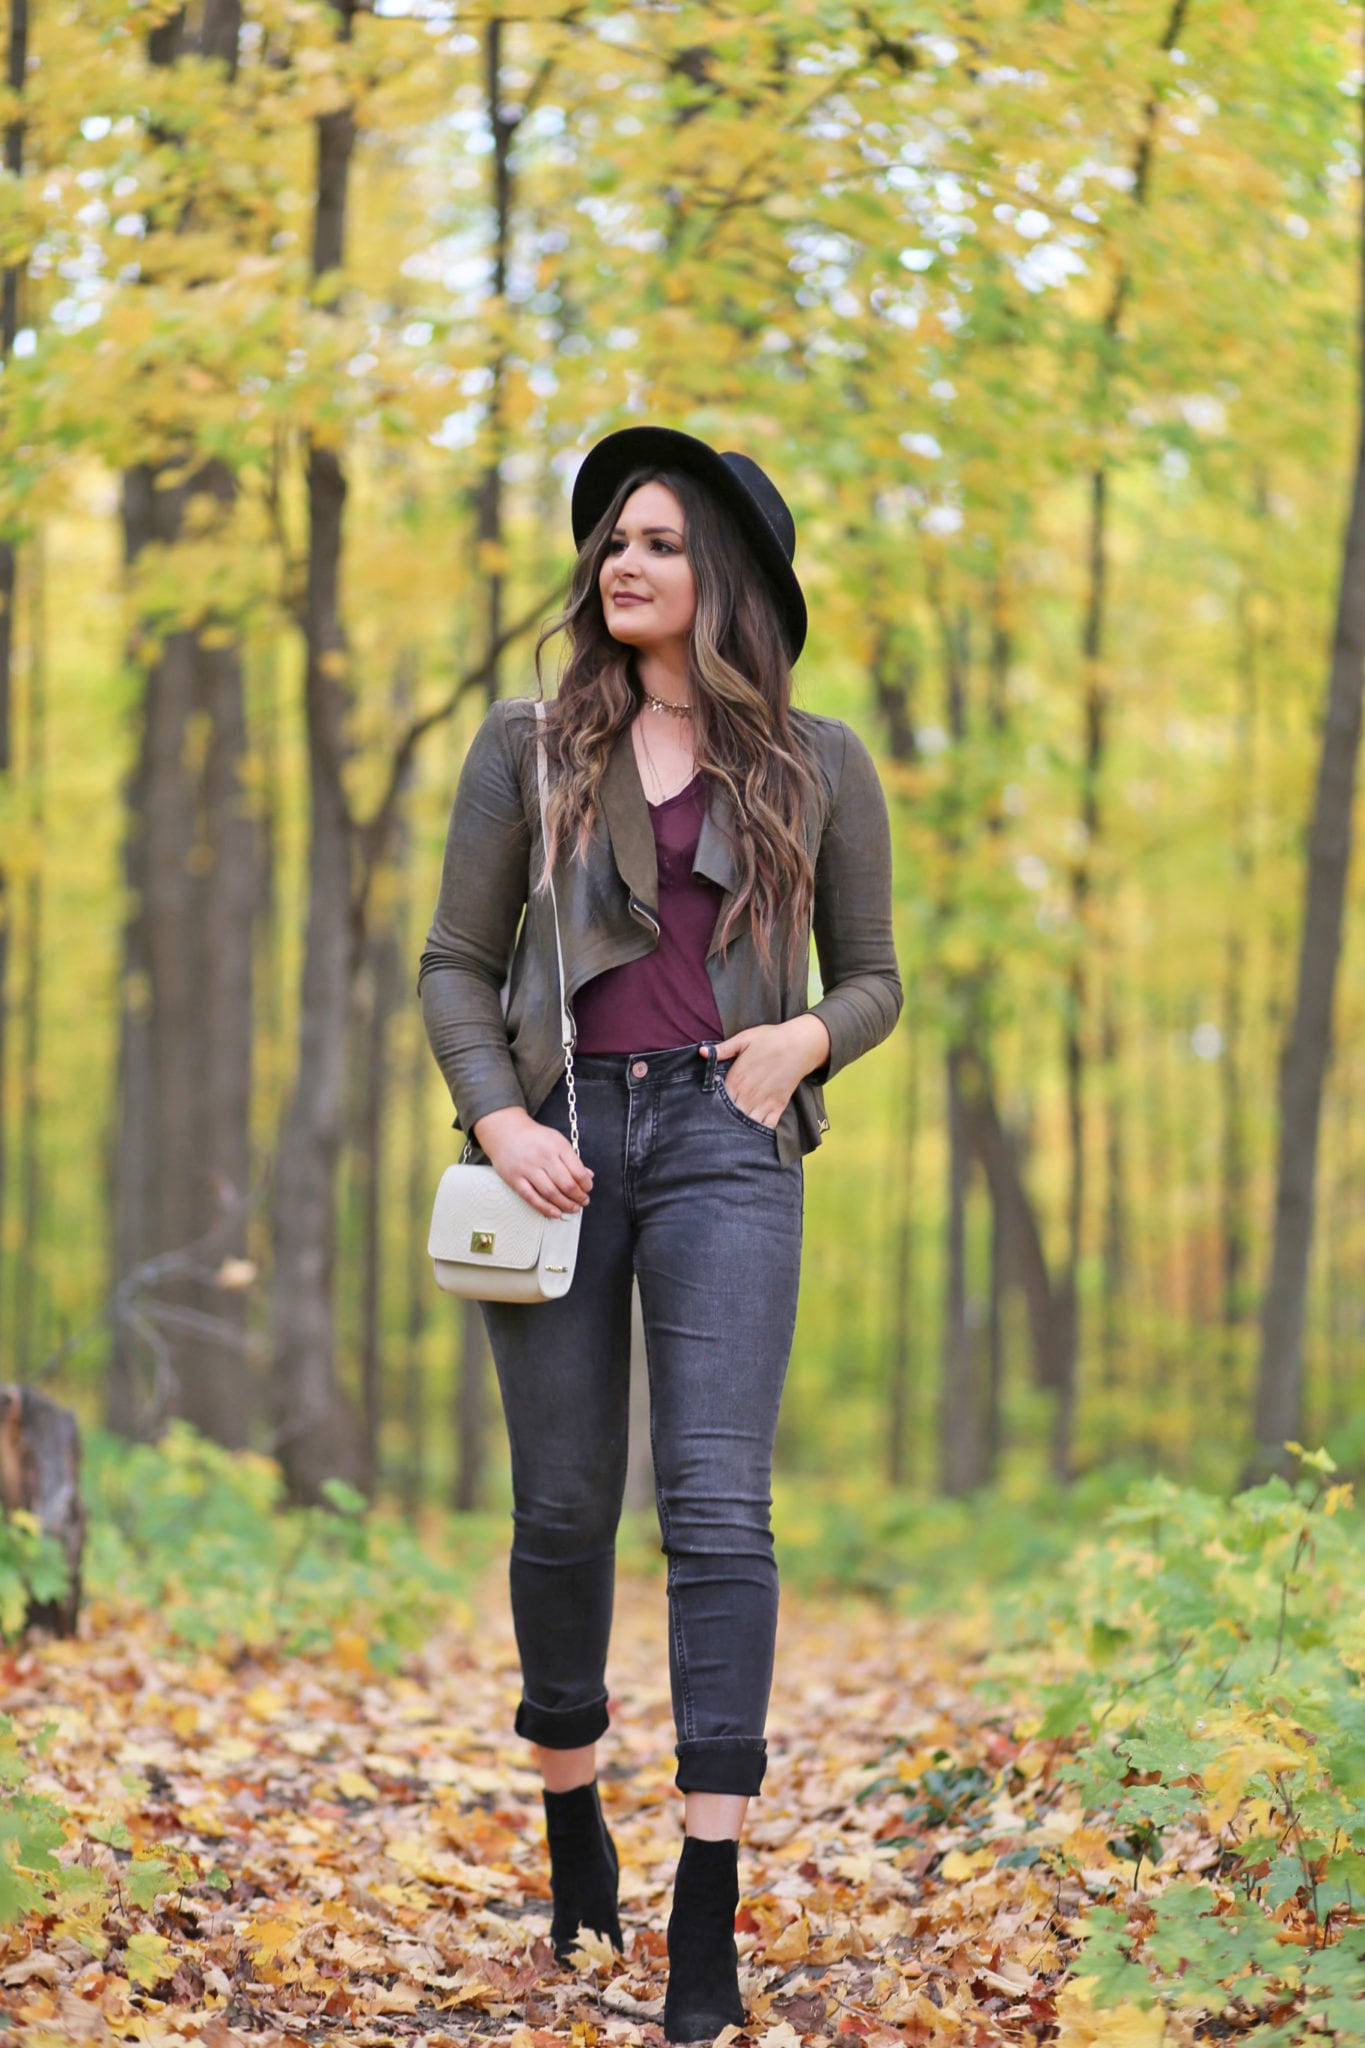 easy fall fashion | mash elle | fashion blog | affordable jeans | skinny jeans that flatter your butt | cute fall style | jeans for tall girls | designer bag dupe crossbody